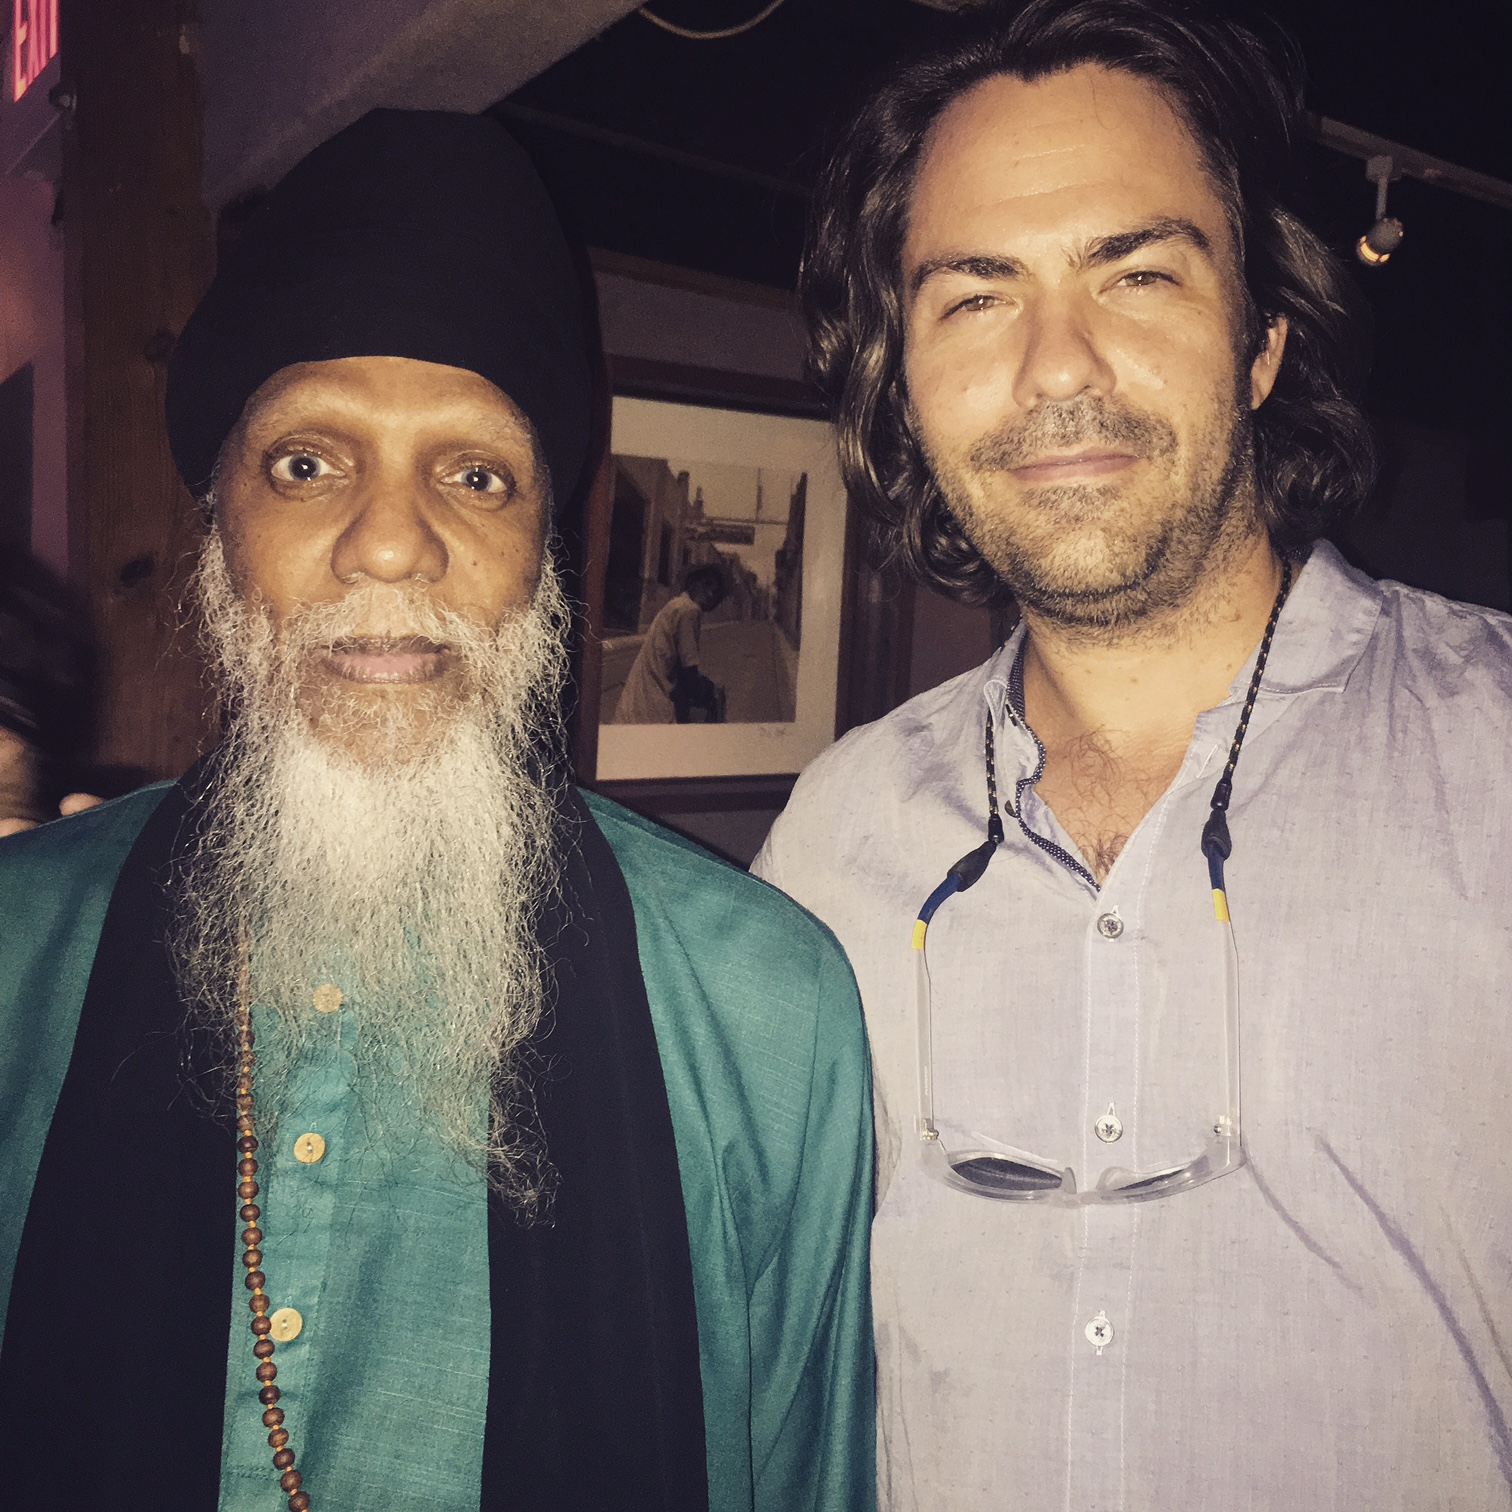 Dr. Lonnie Smith at Snug Harbor in New Orleans